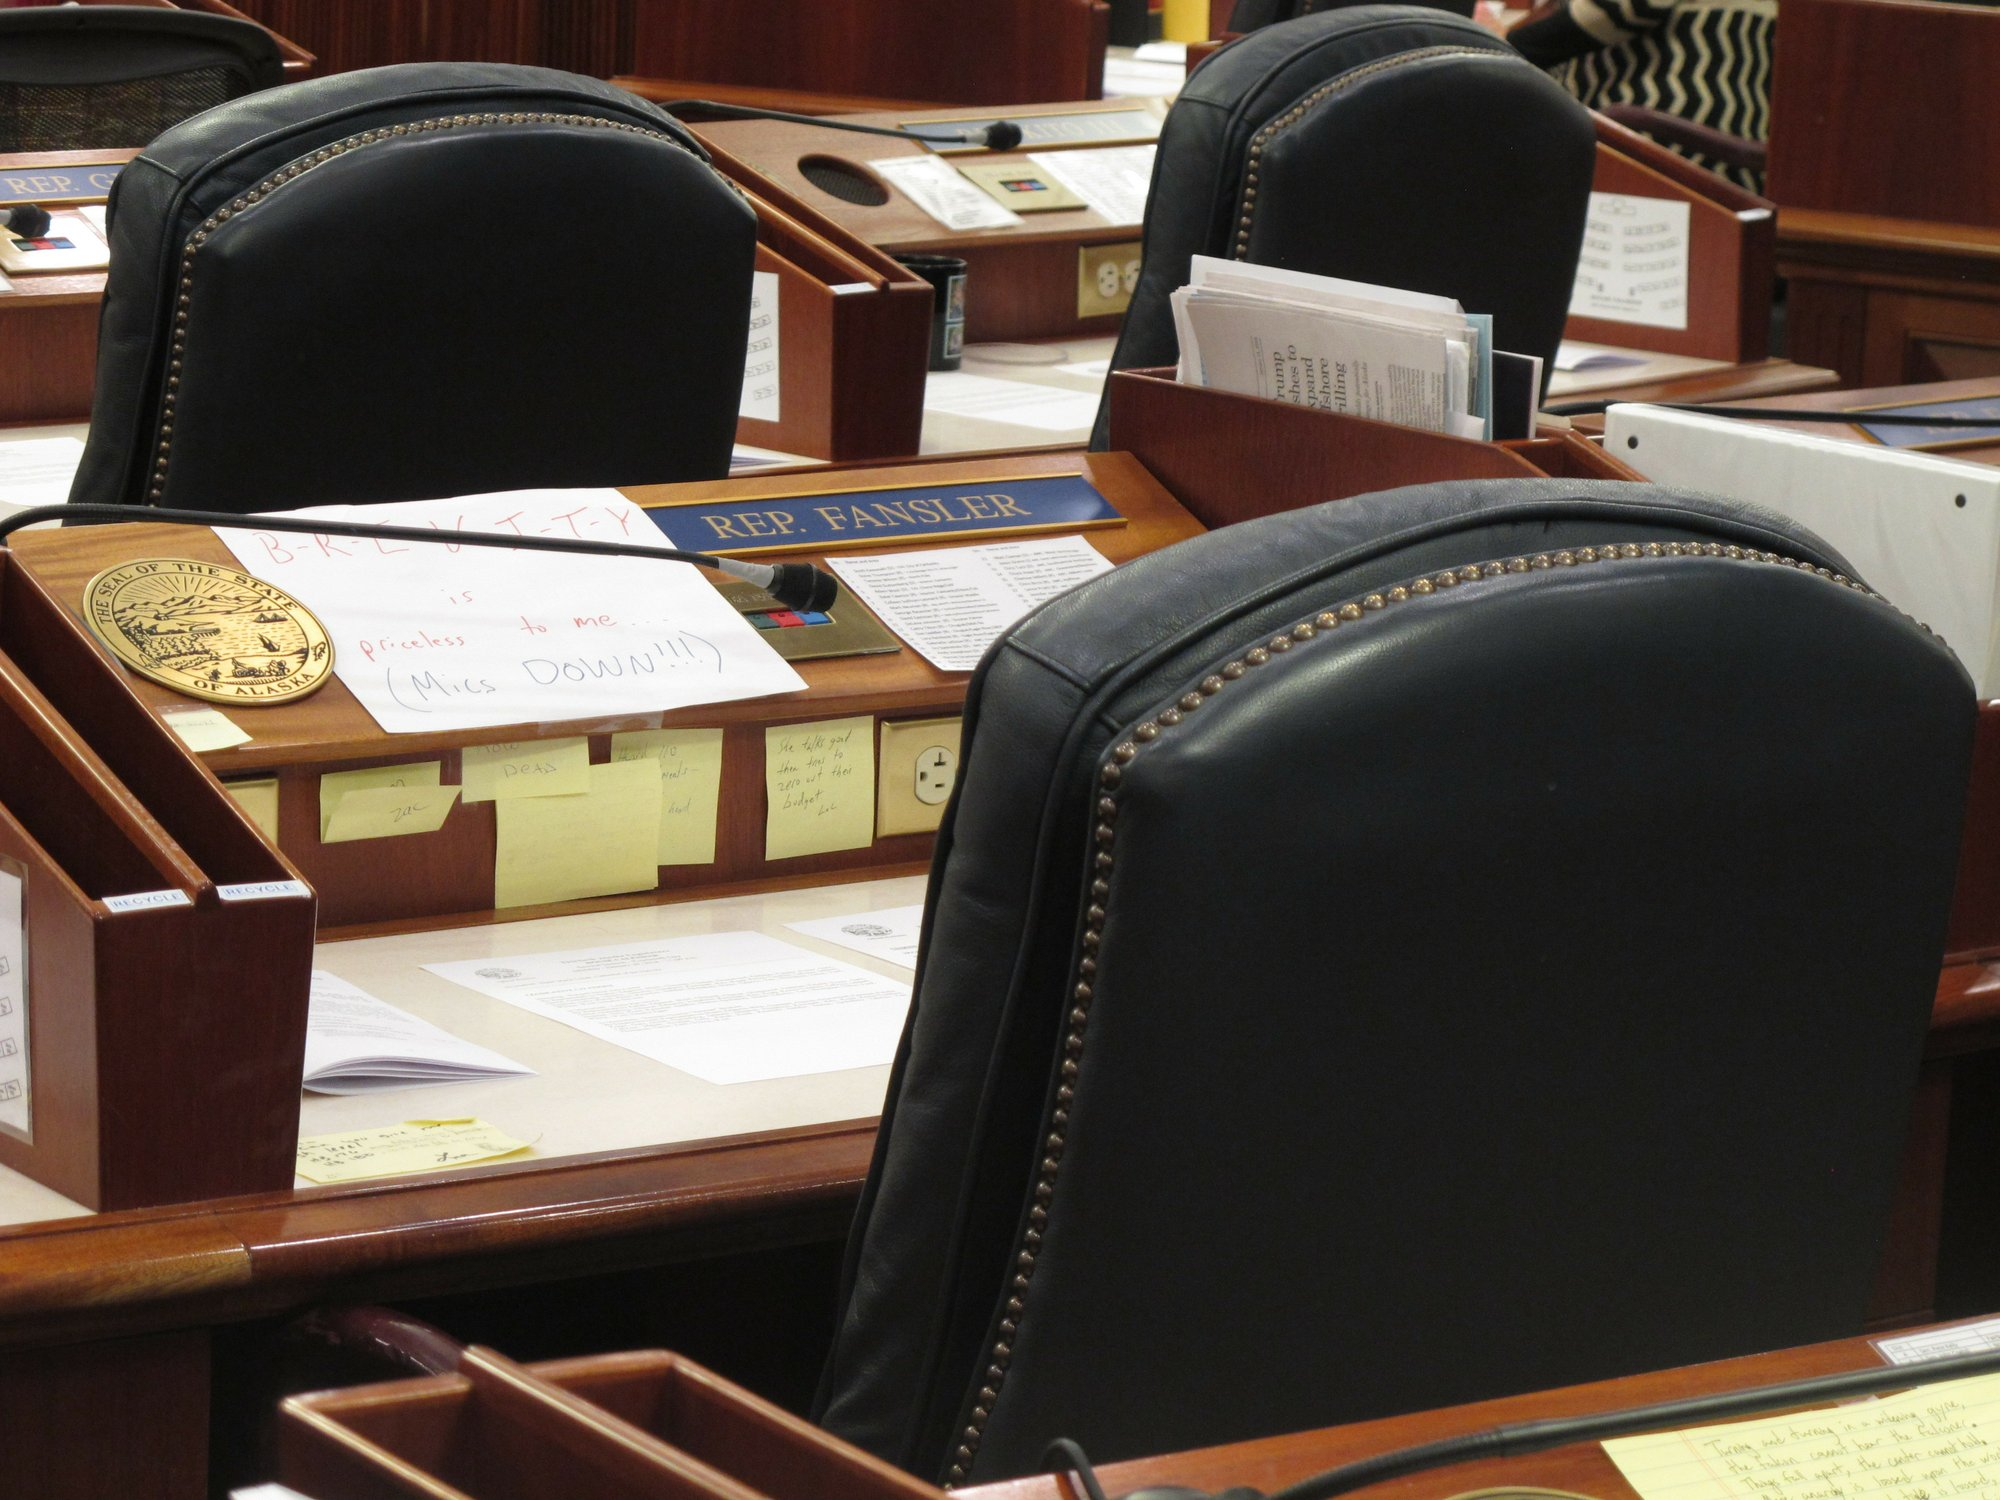 2 Alaska Lawmakers Face Questions About Their Behavior